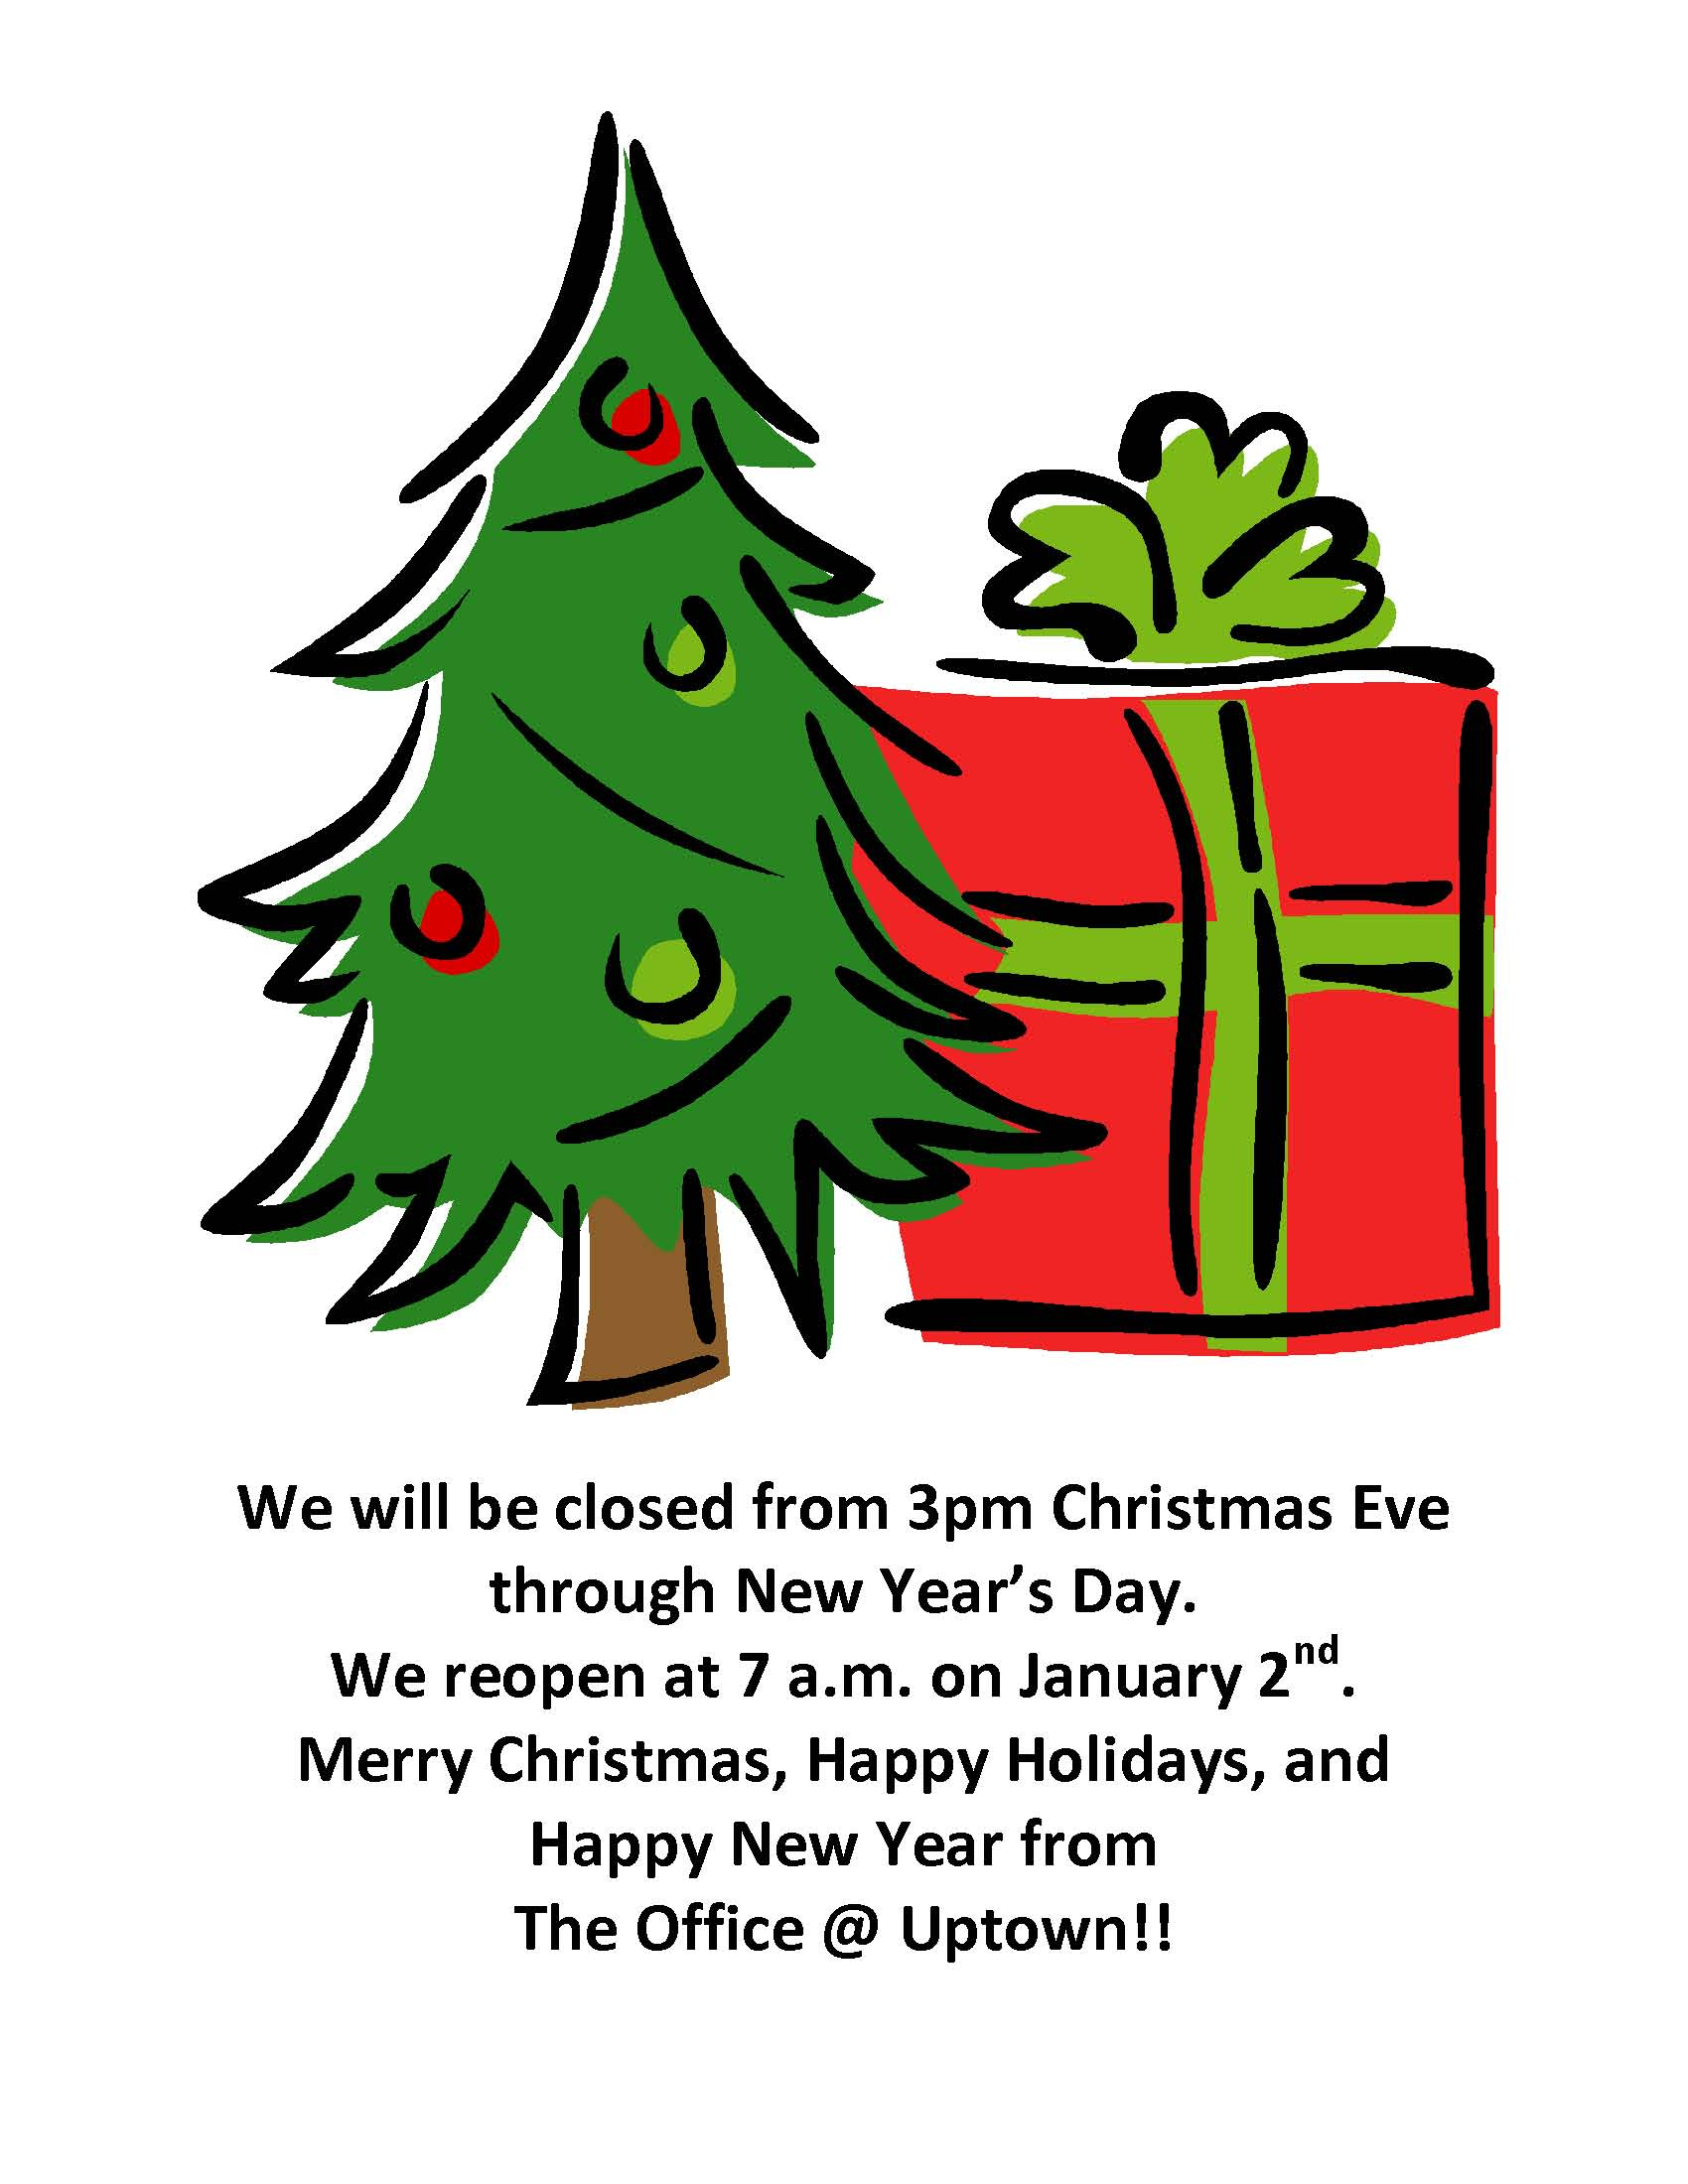 Christmas closing sign, tree